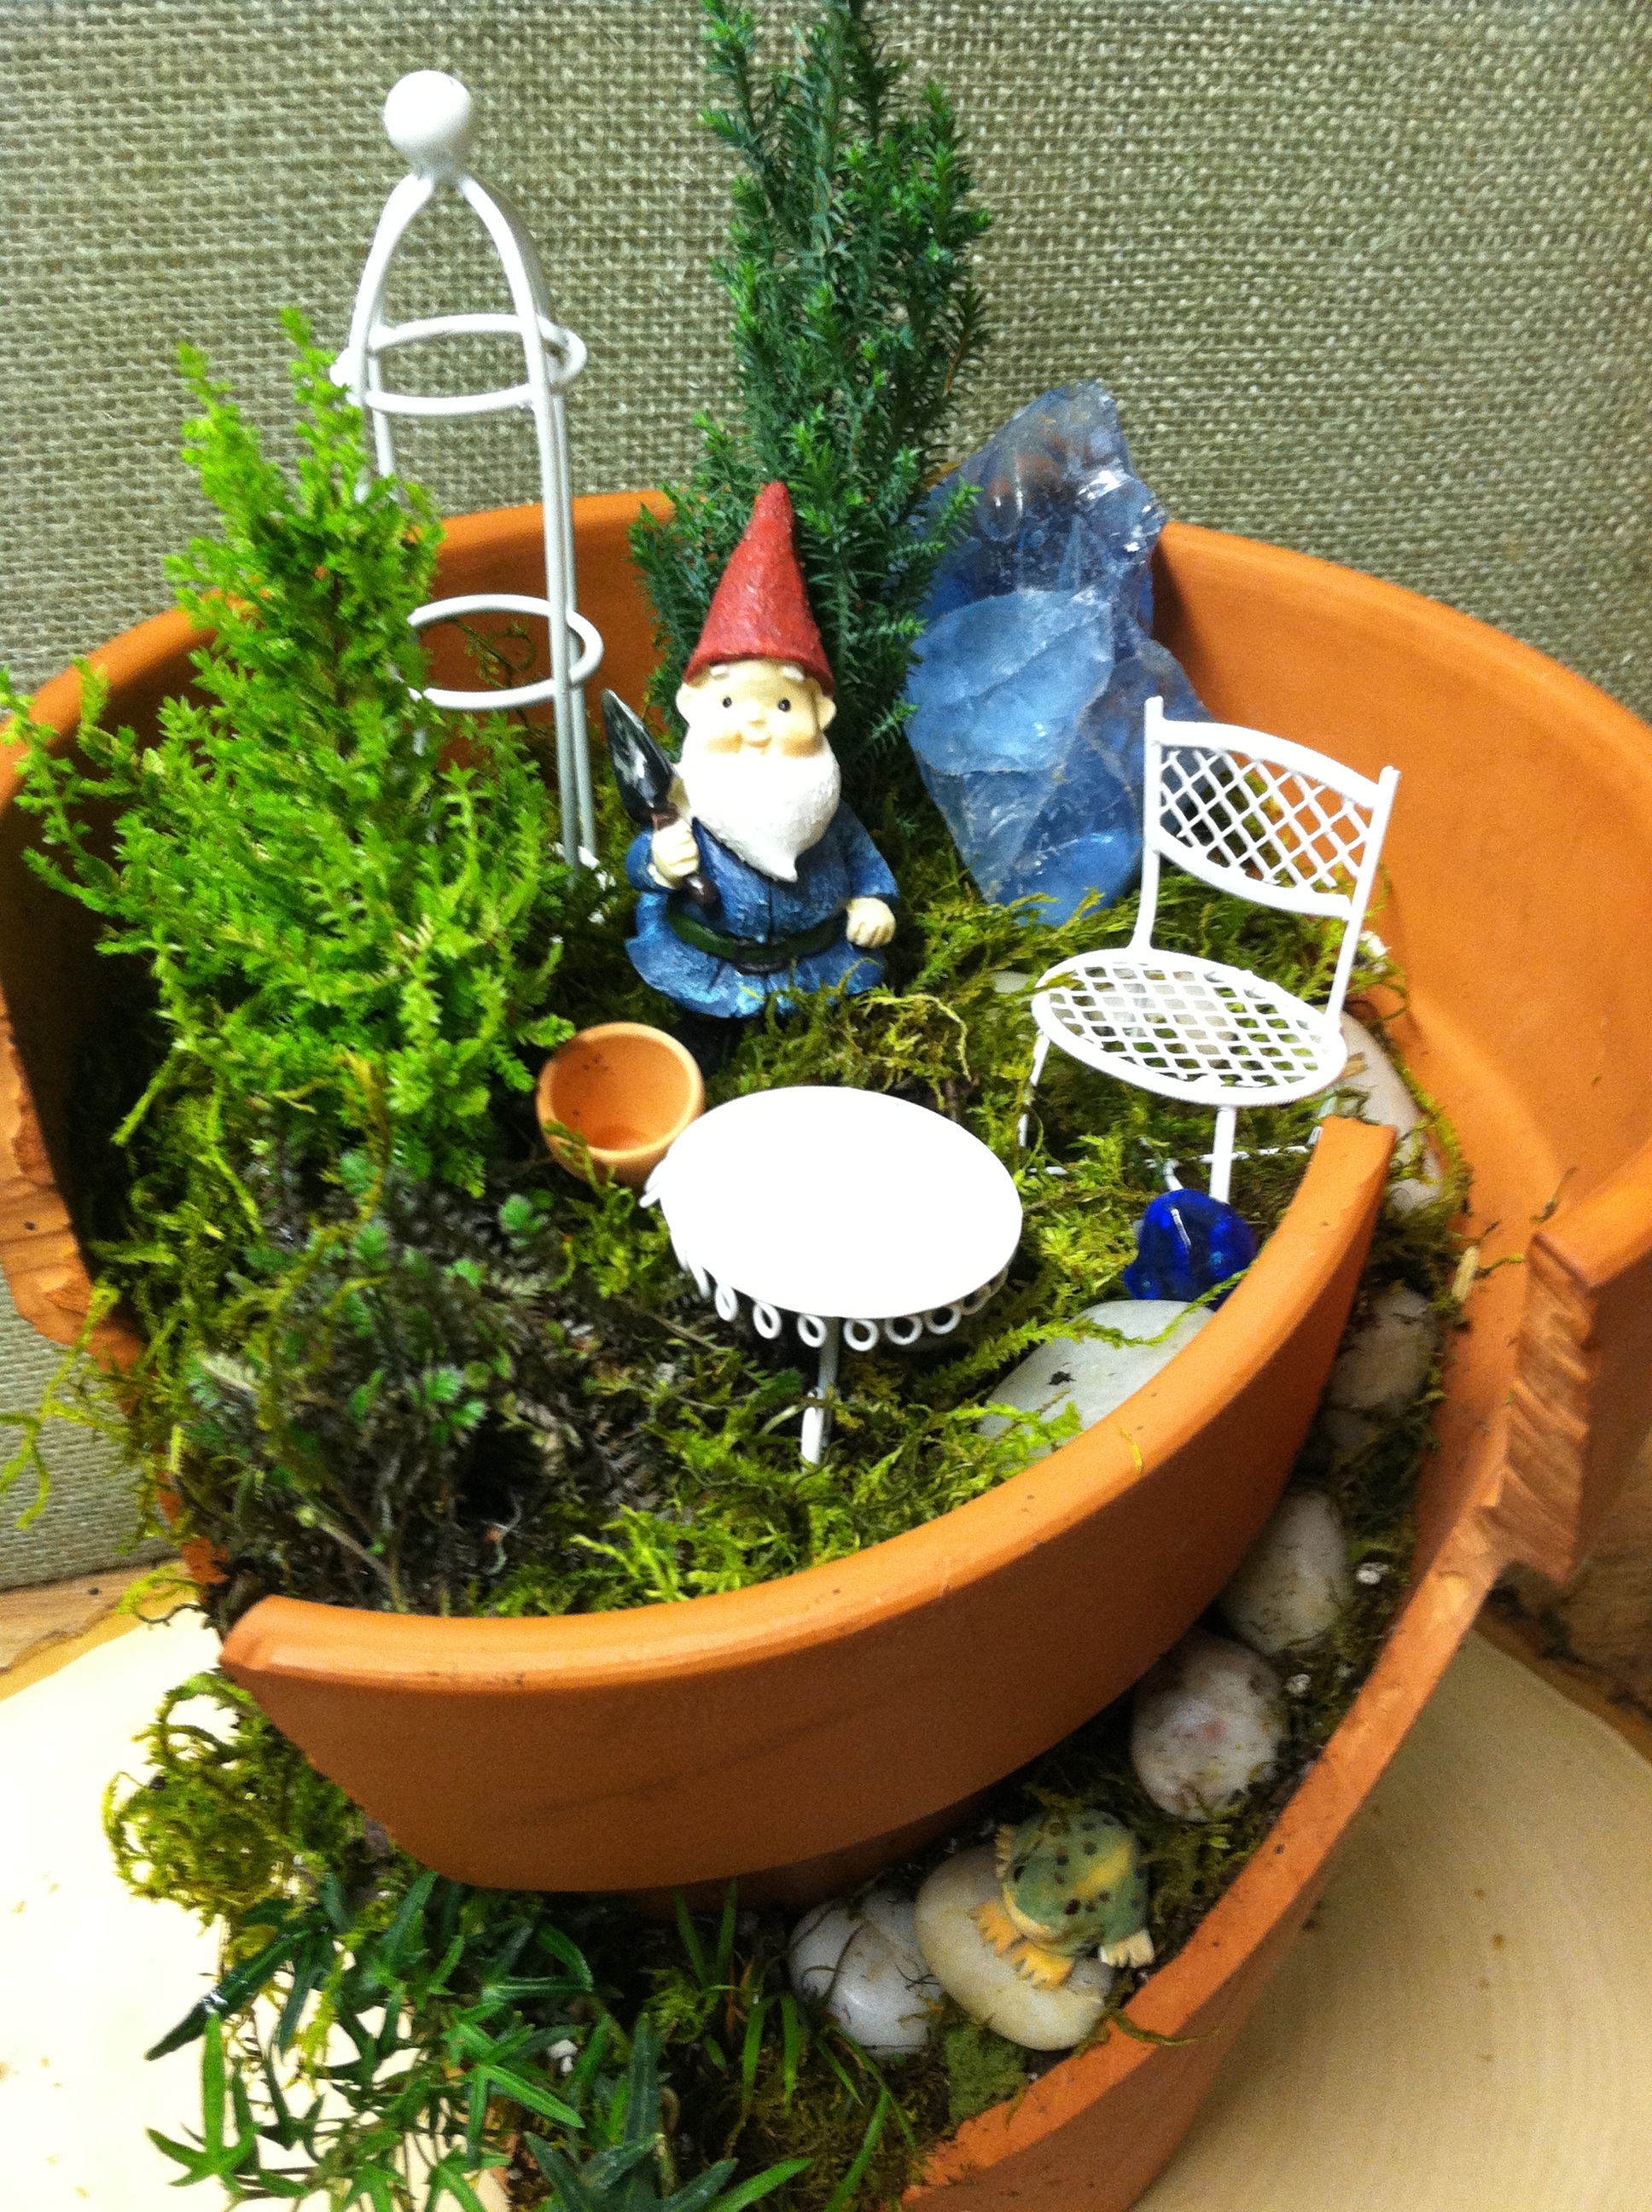 Broken Pot Garden- Home for a Gnome! | The Garden Diaries